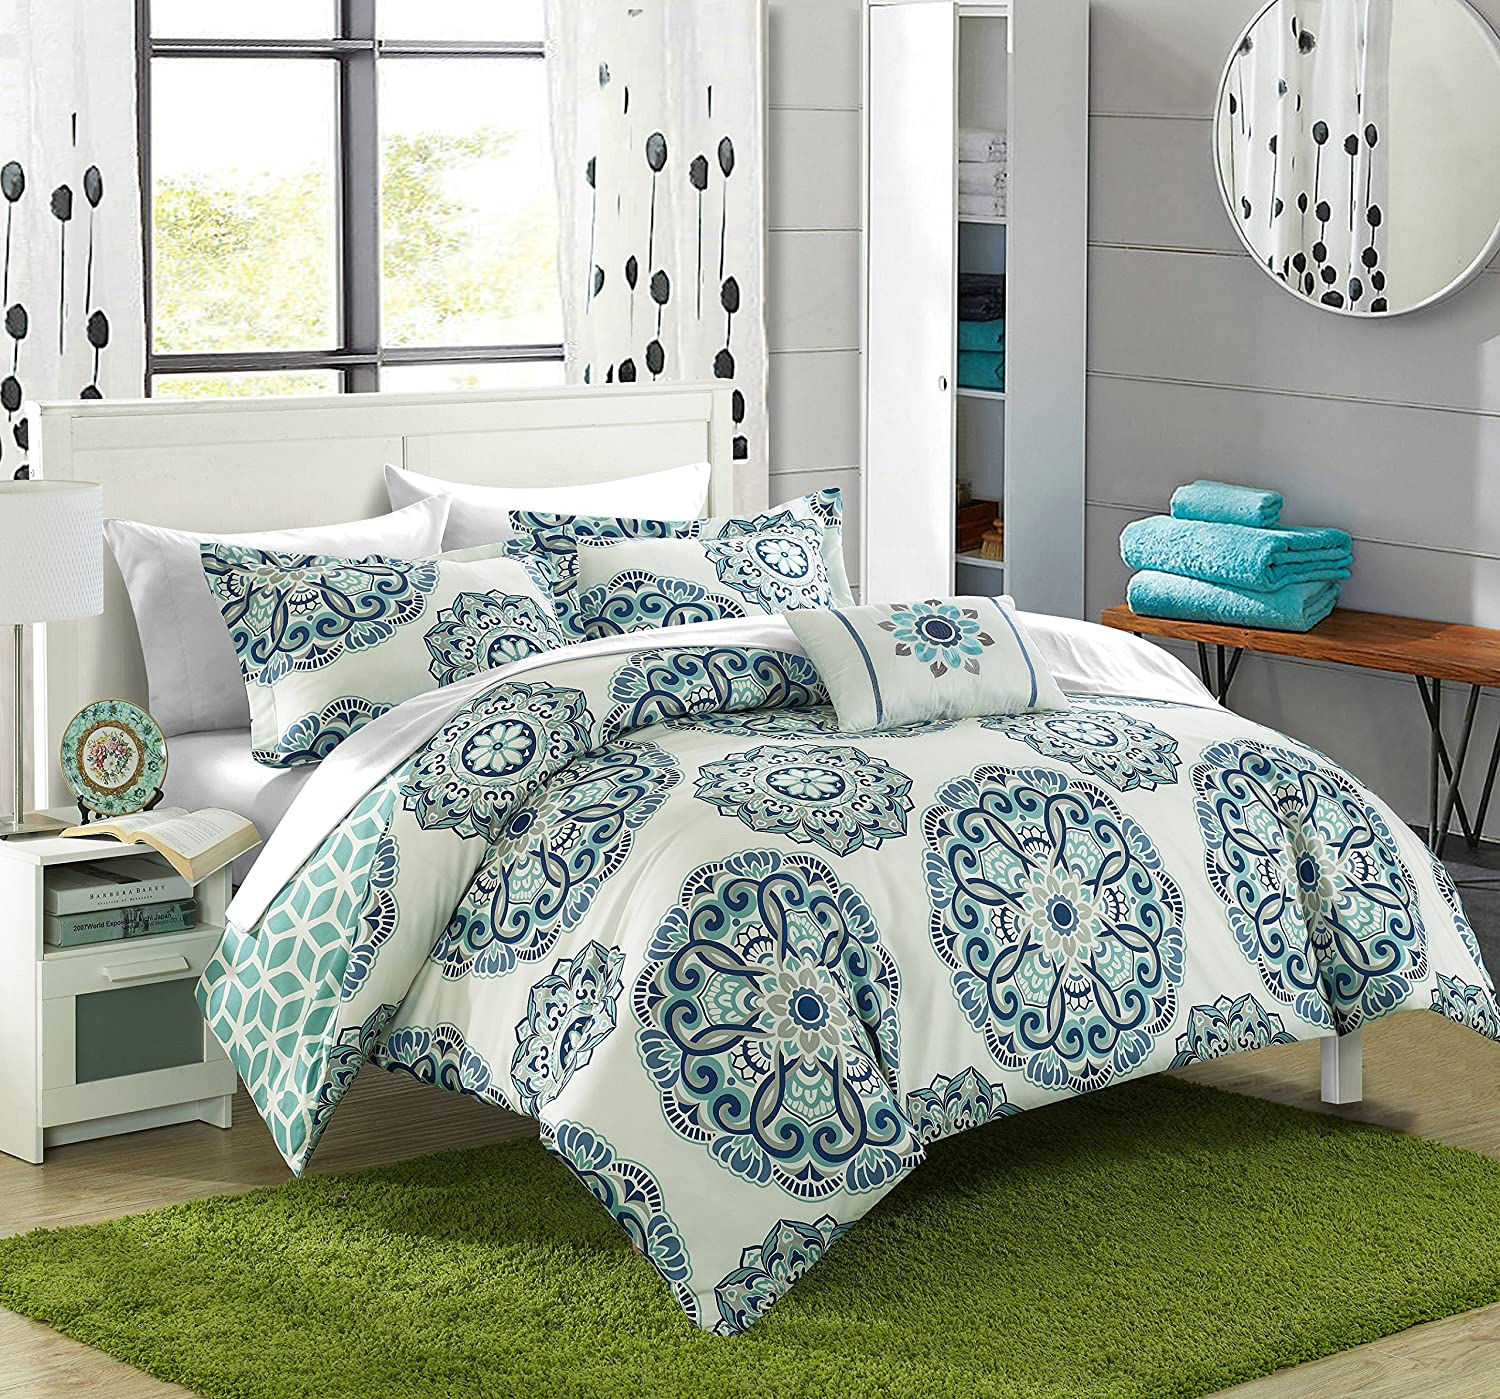 Chic Home Barcelona 8 Piece Reversible Comforter Set Super Soft Microfiber Large Printed Medallion Design with Geometric